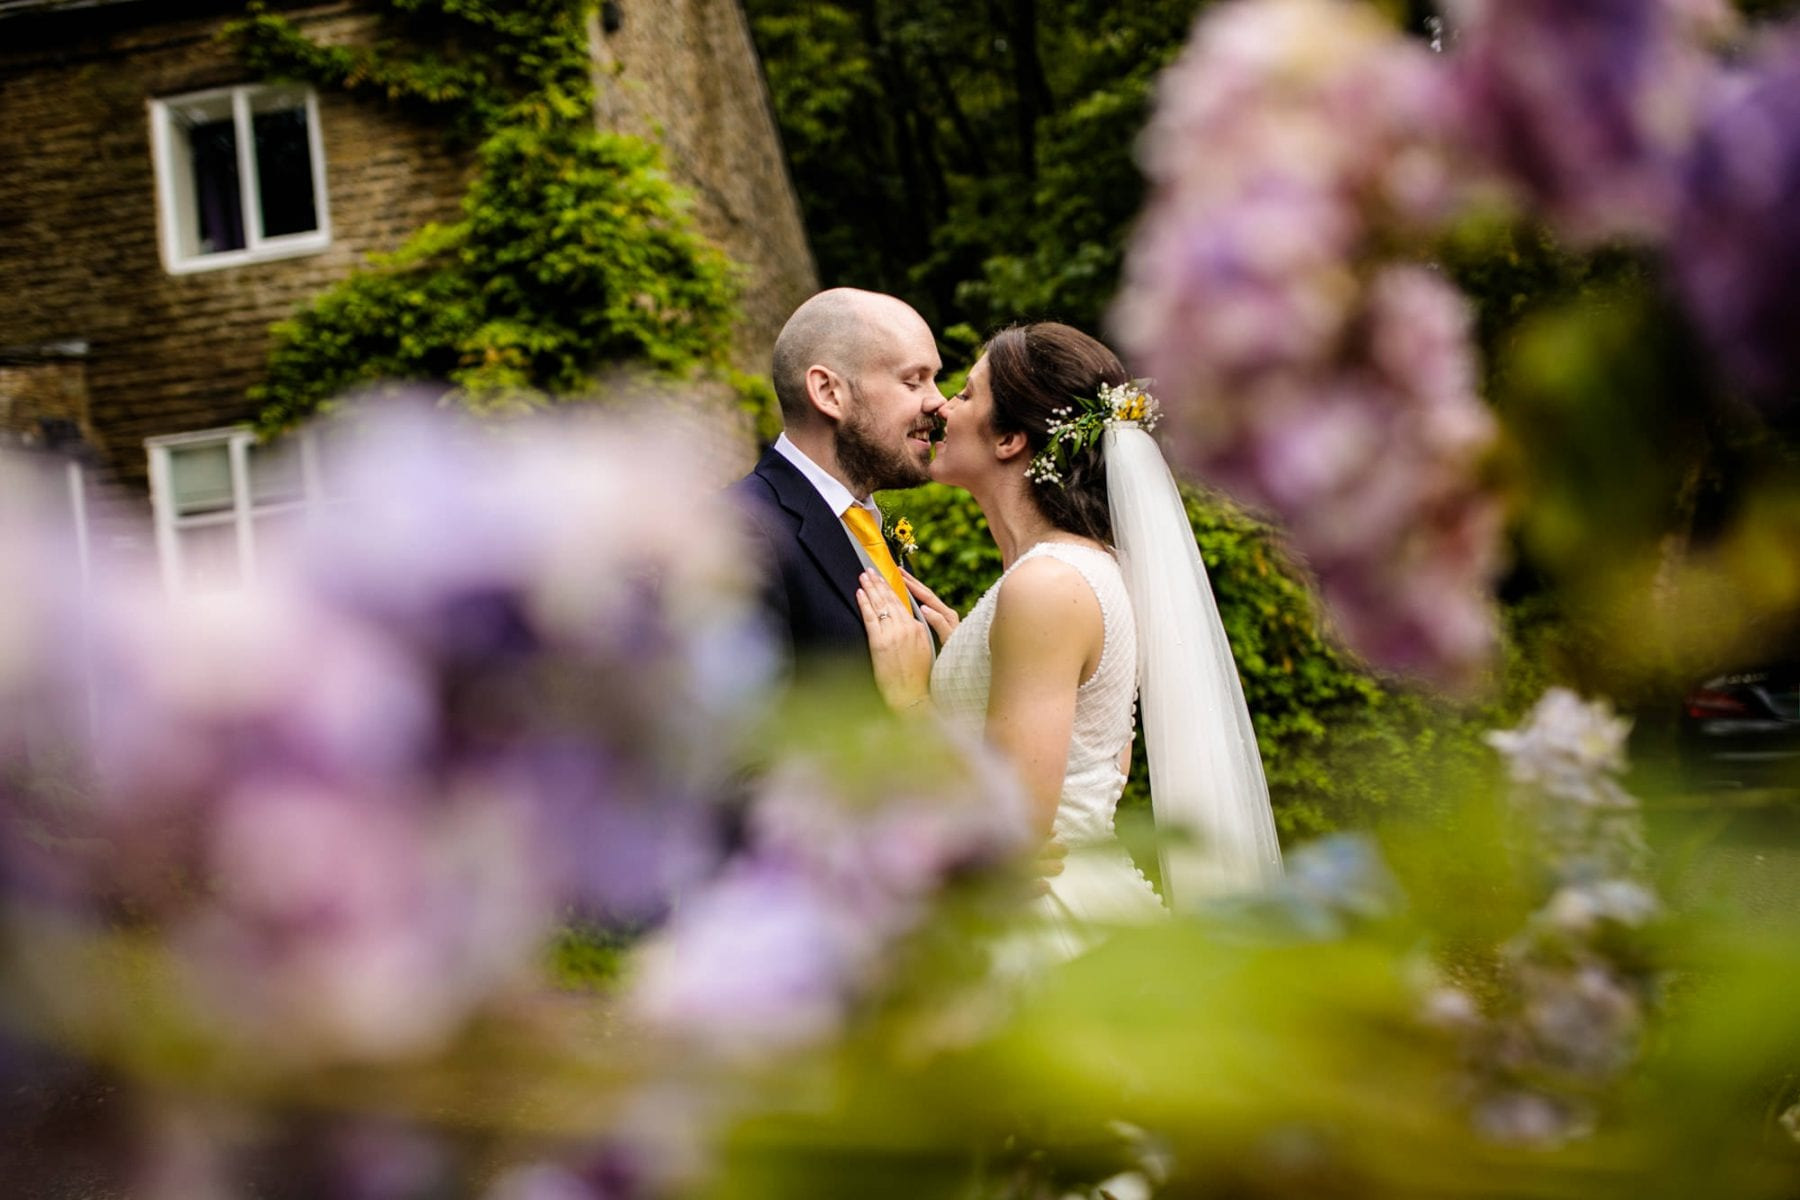 Colourful Wedding Photographs